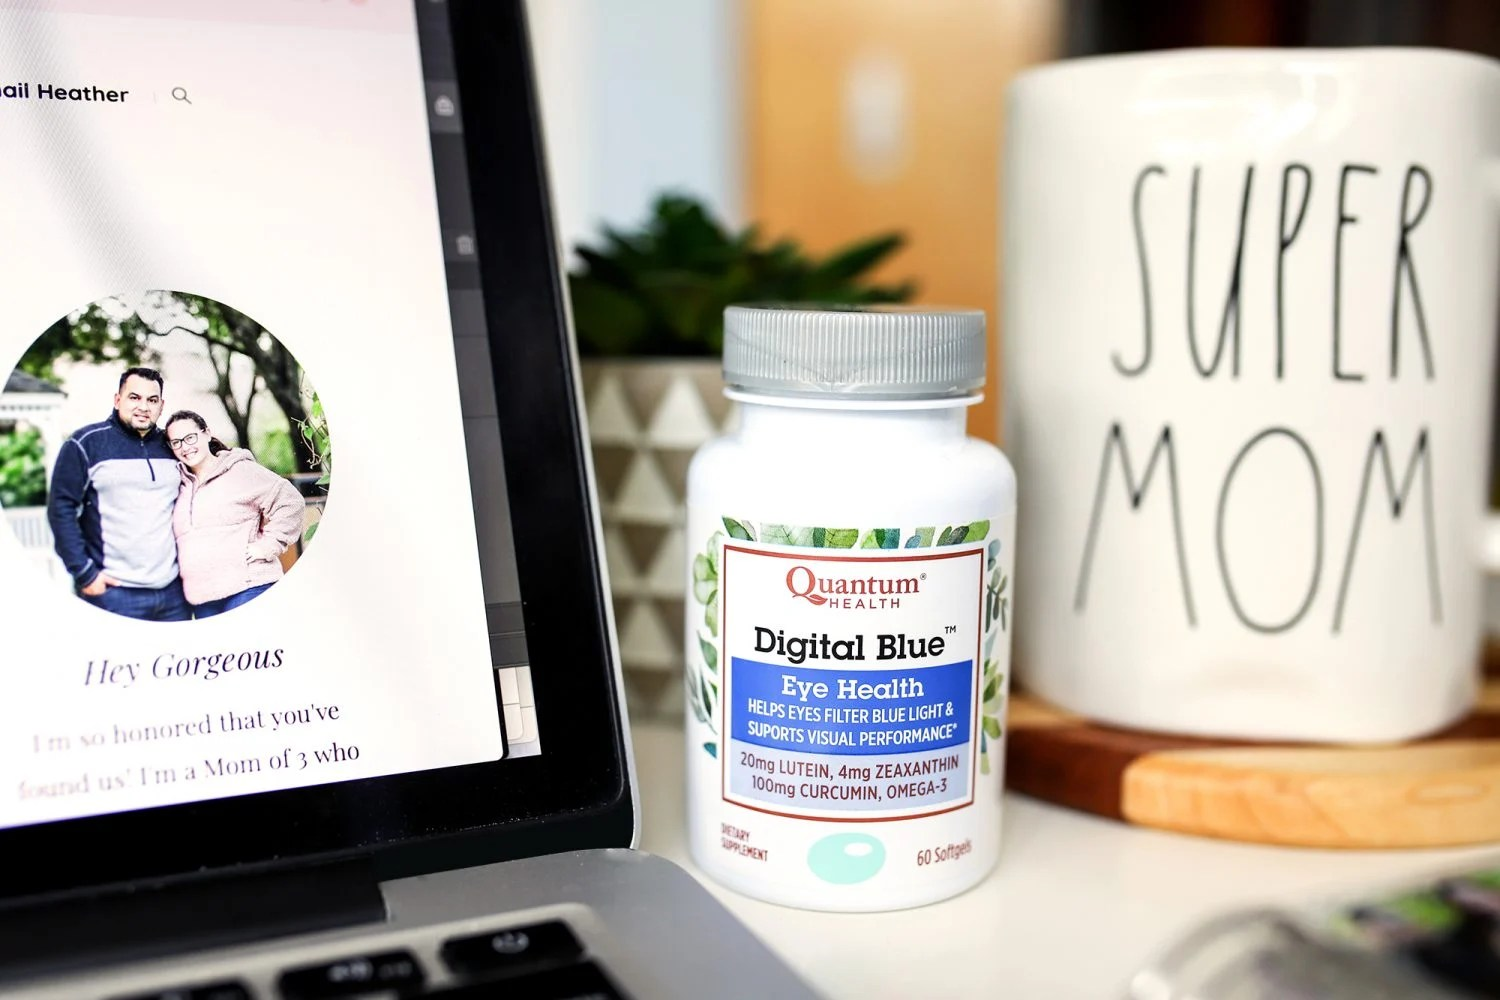 Bloggers desk with laptop, super mom cup and digital blue eye health by quantum health